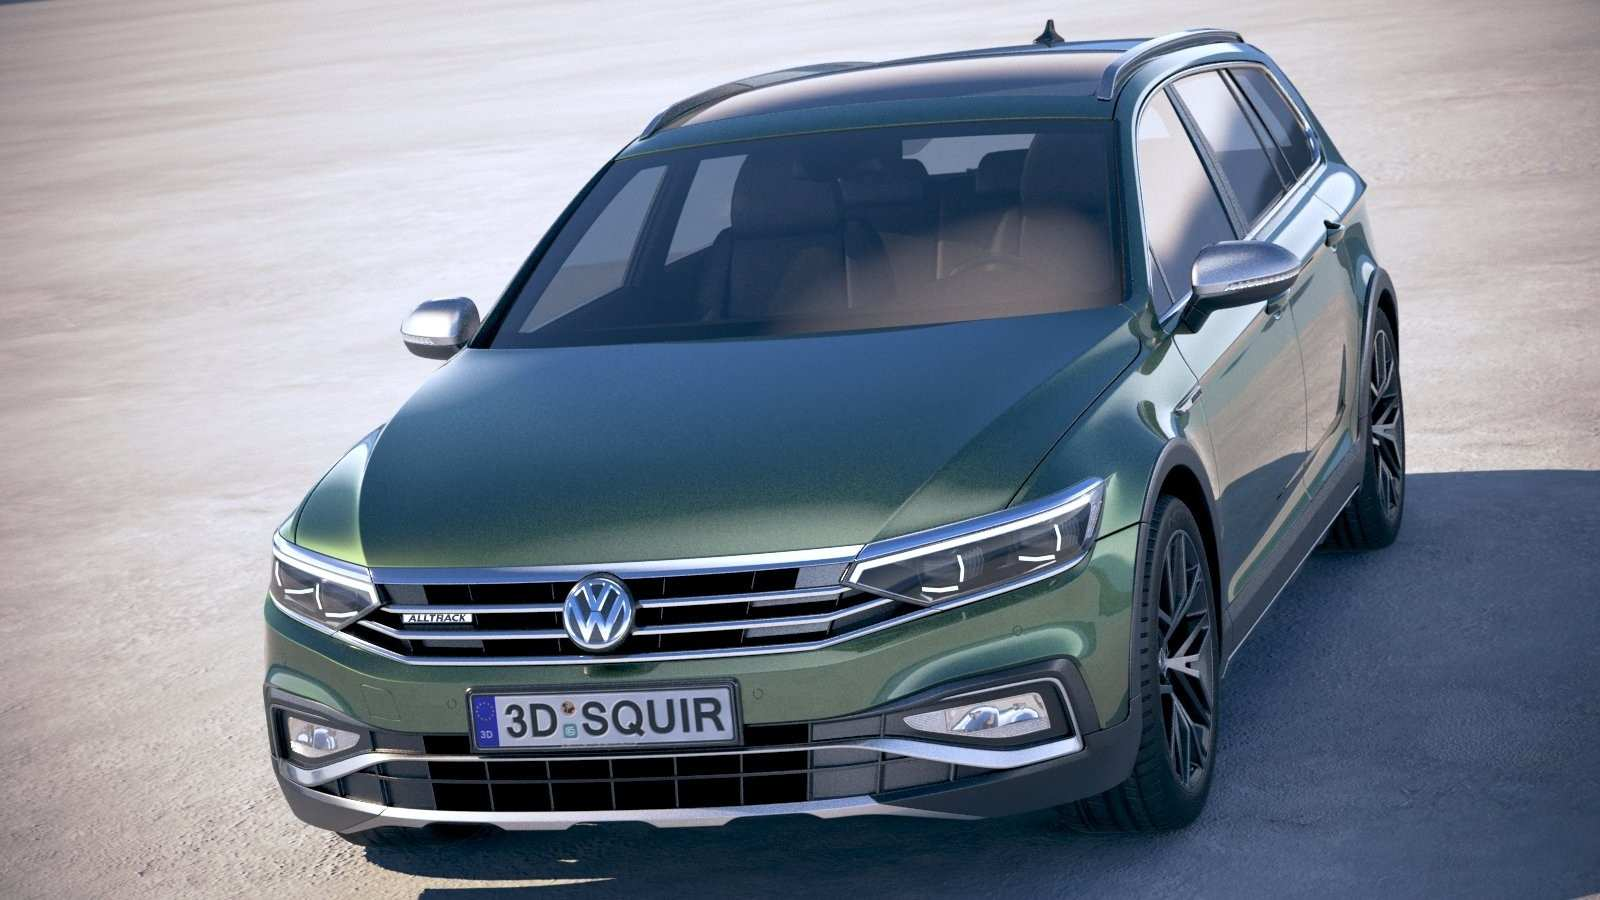 45 New Volkswagen Alltrack 2020 Performance And New Engine